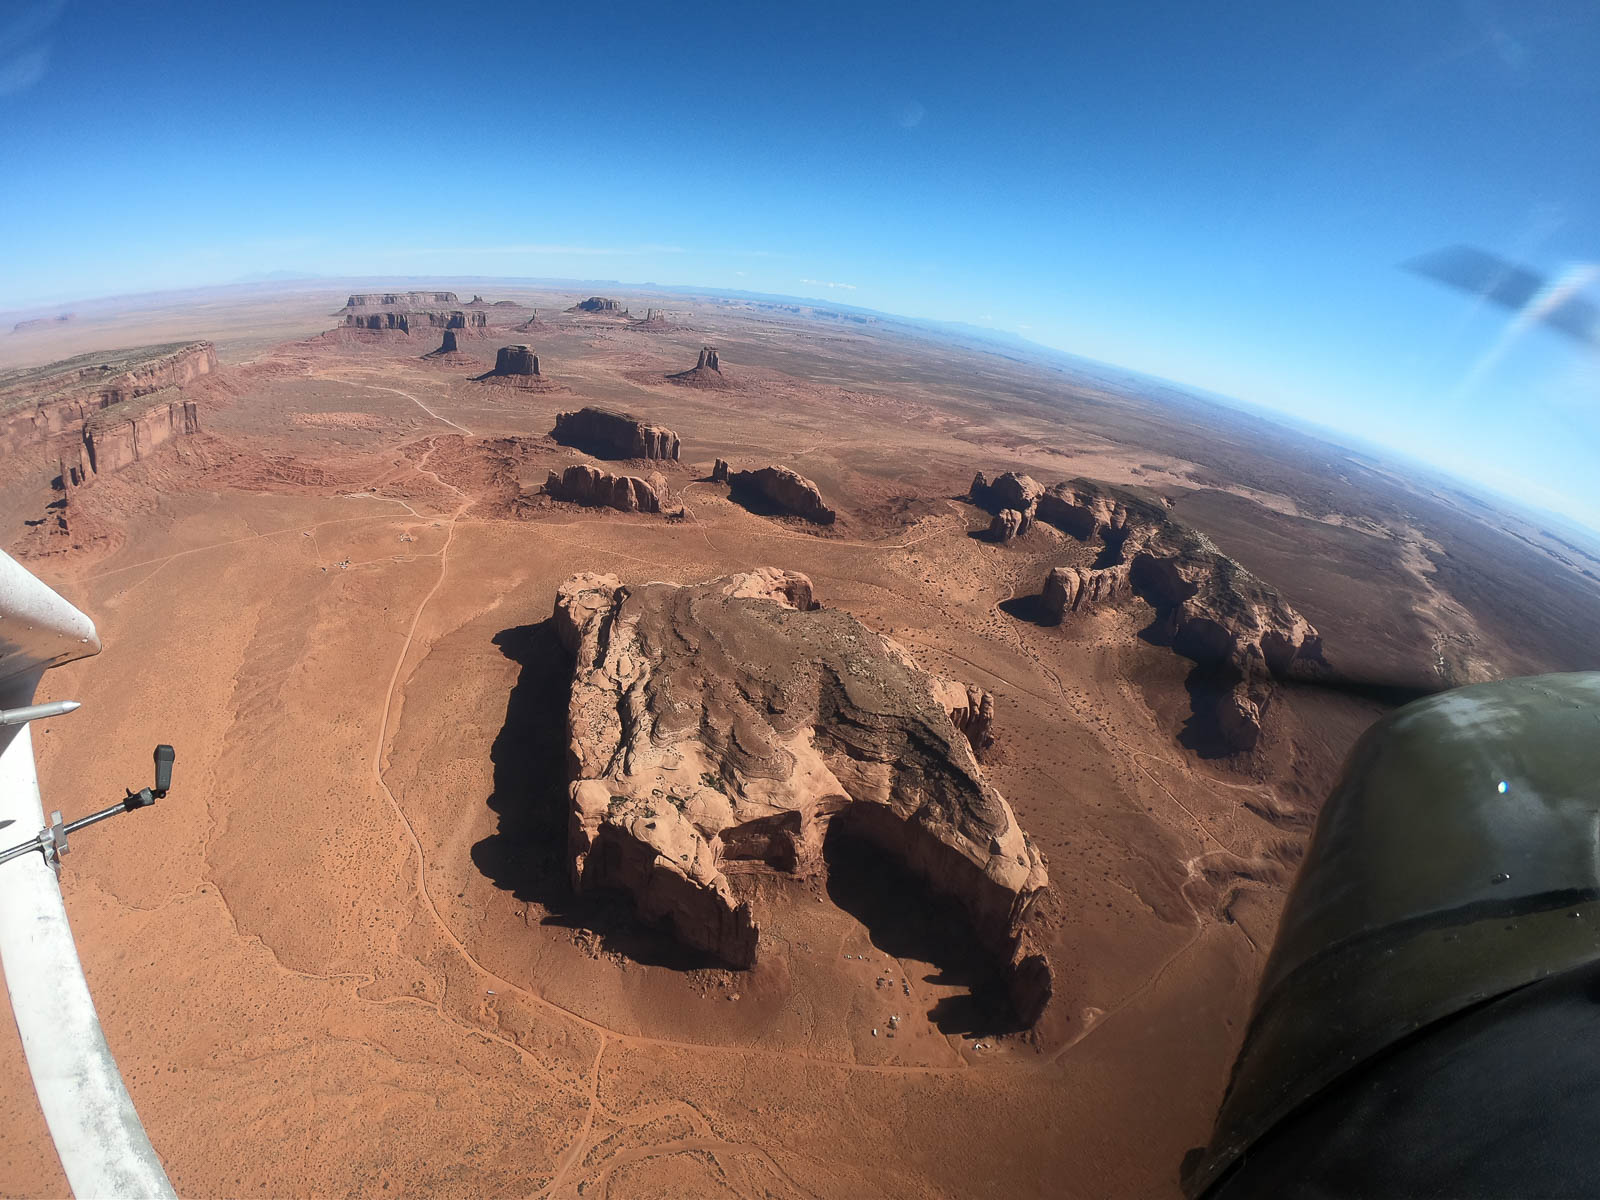 Entering the Monument Valley